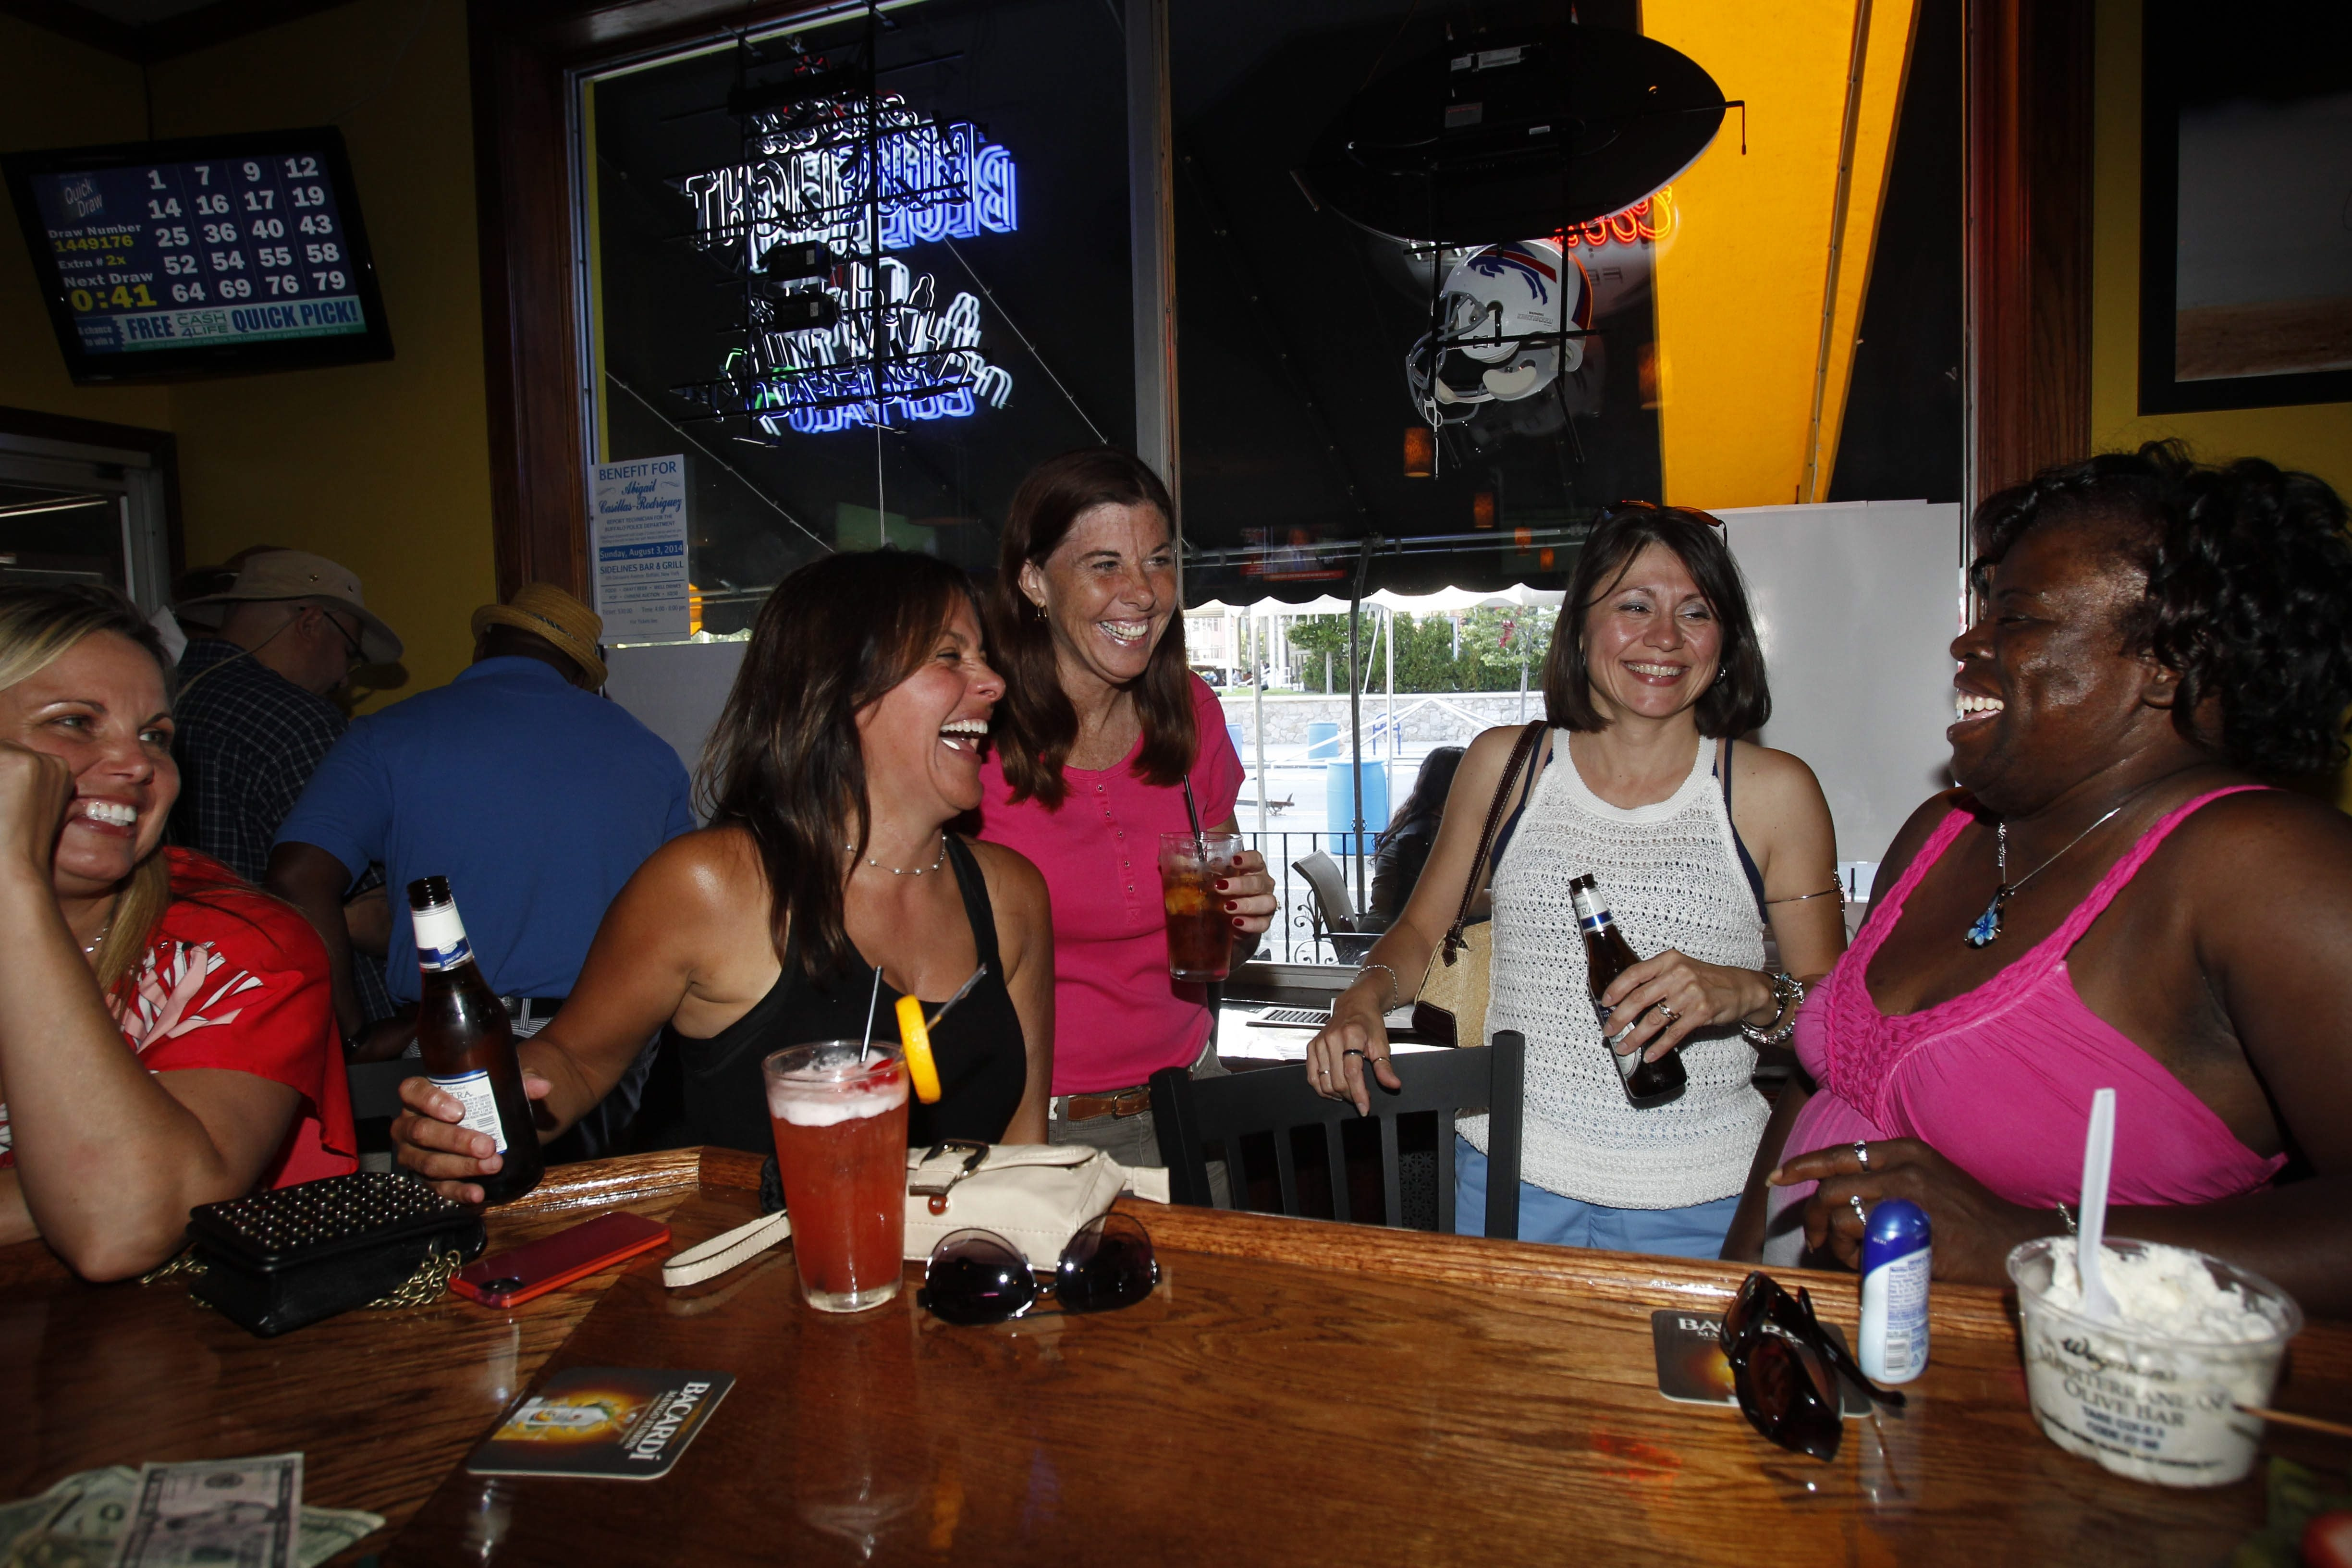 Enjoying a laugh and some drinks at Sidelines Sports Bar and Grill on Delaware Avenue are, from left, Joanne DiPasquale, Wendy Collier, Cheryl Campbell, Delilah Ventura and Cece Knight.